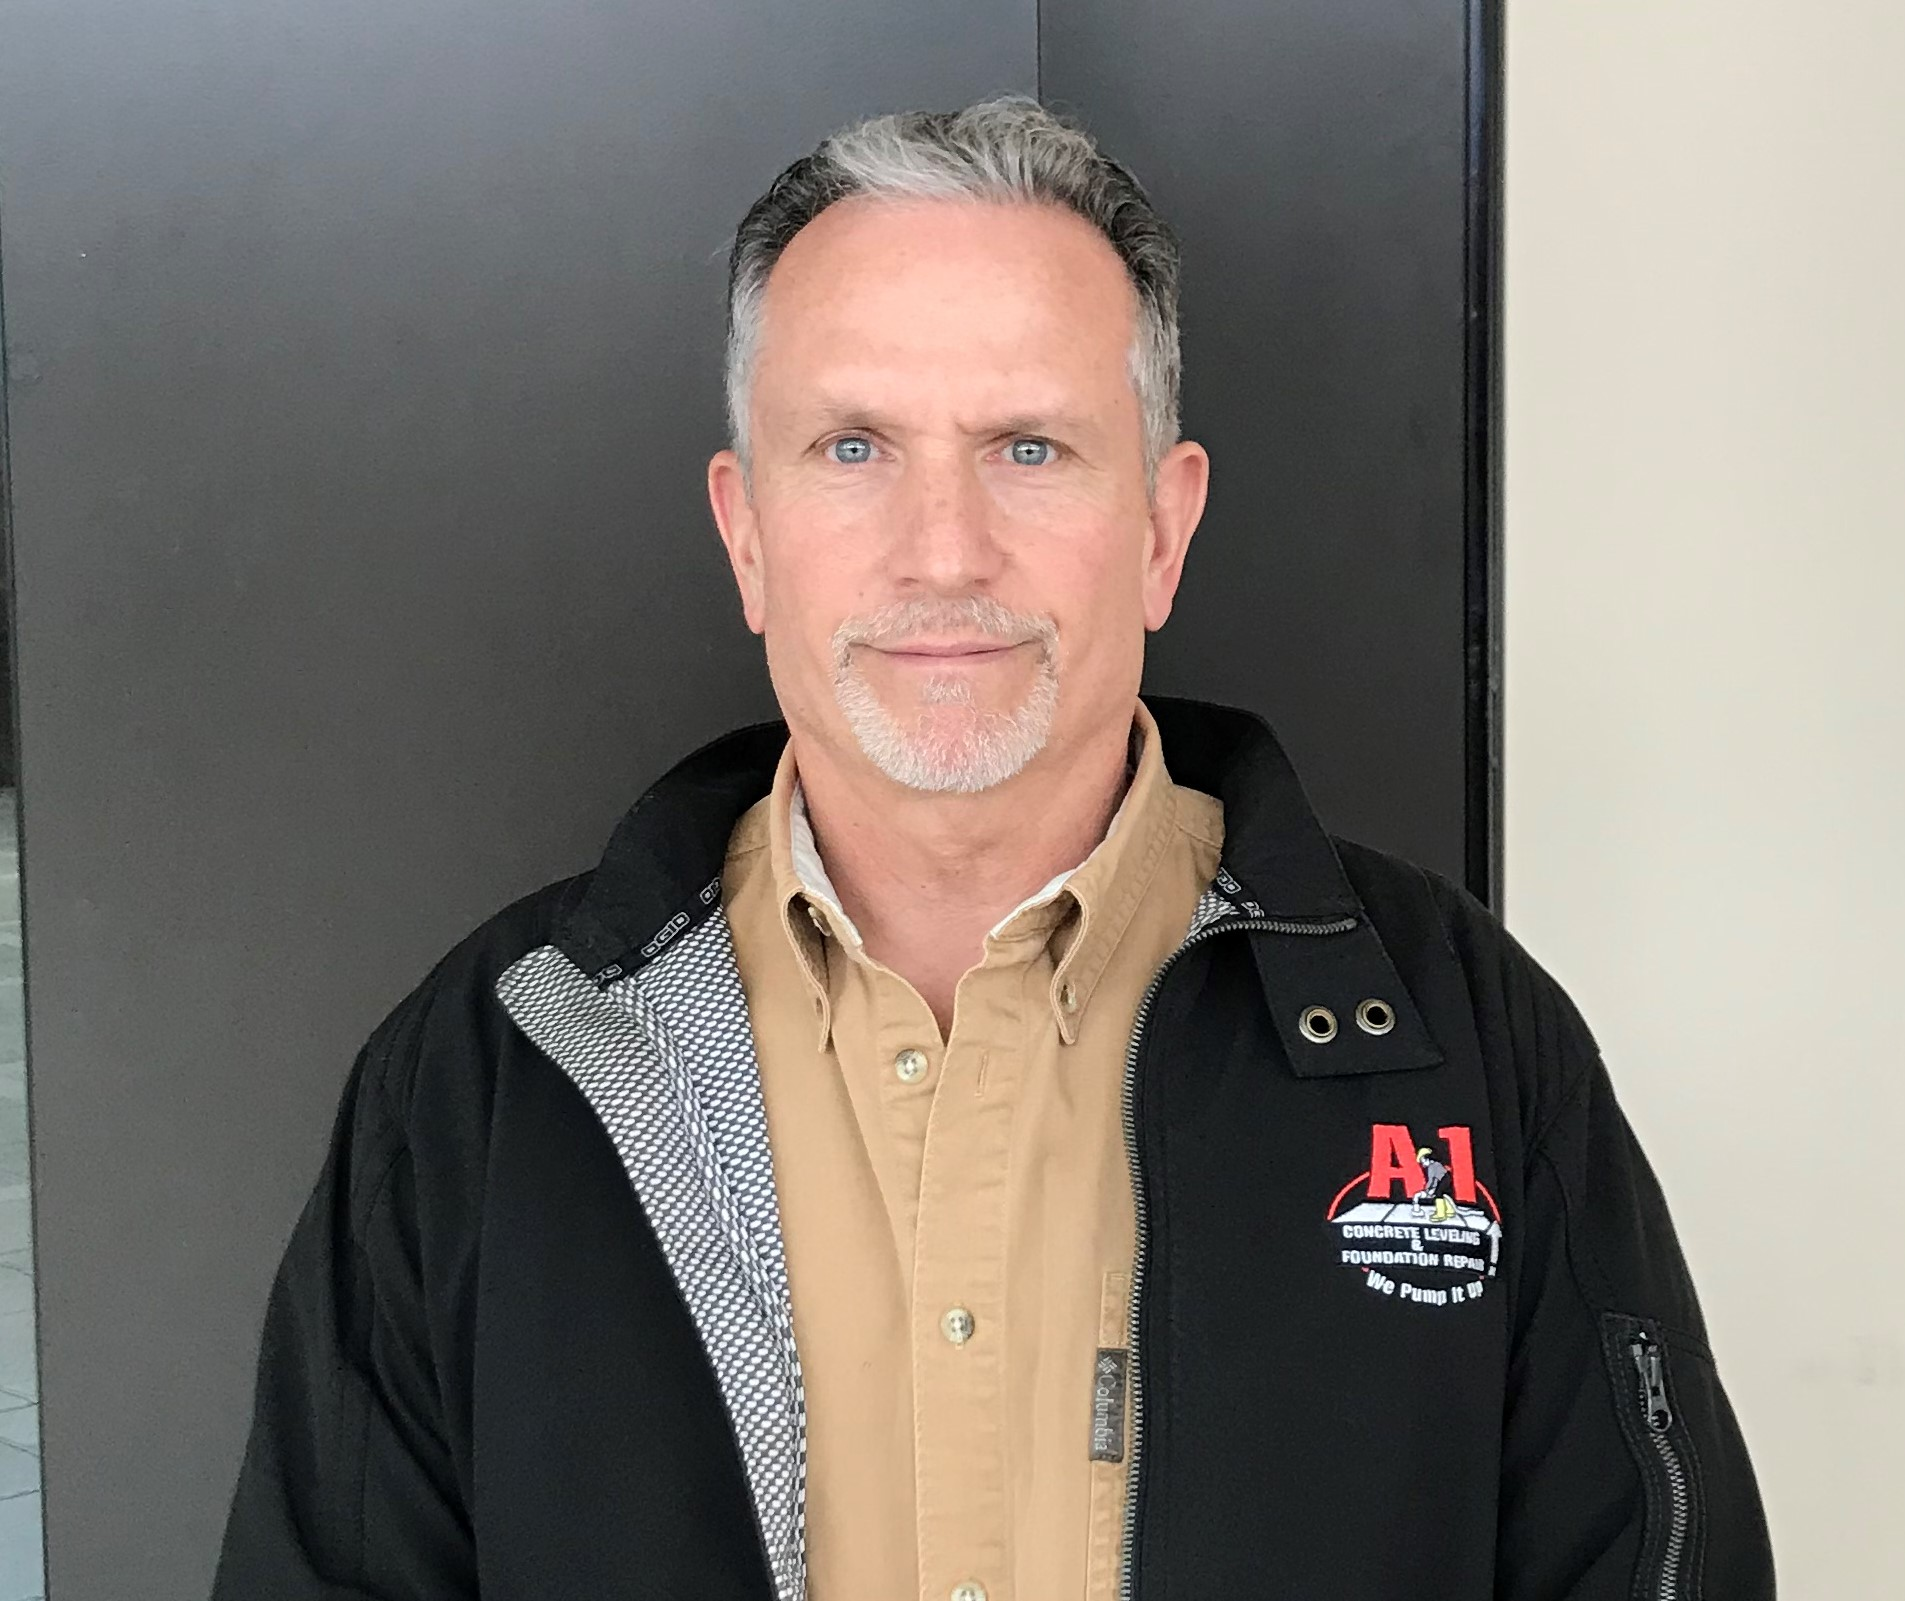 A-1 Concrete Leveling - East's Owner, John Romanin